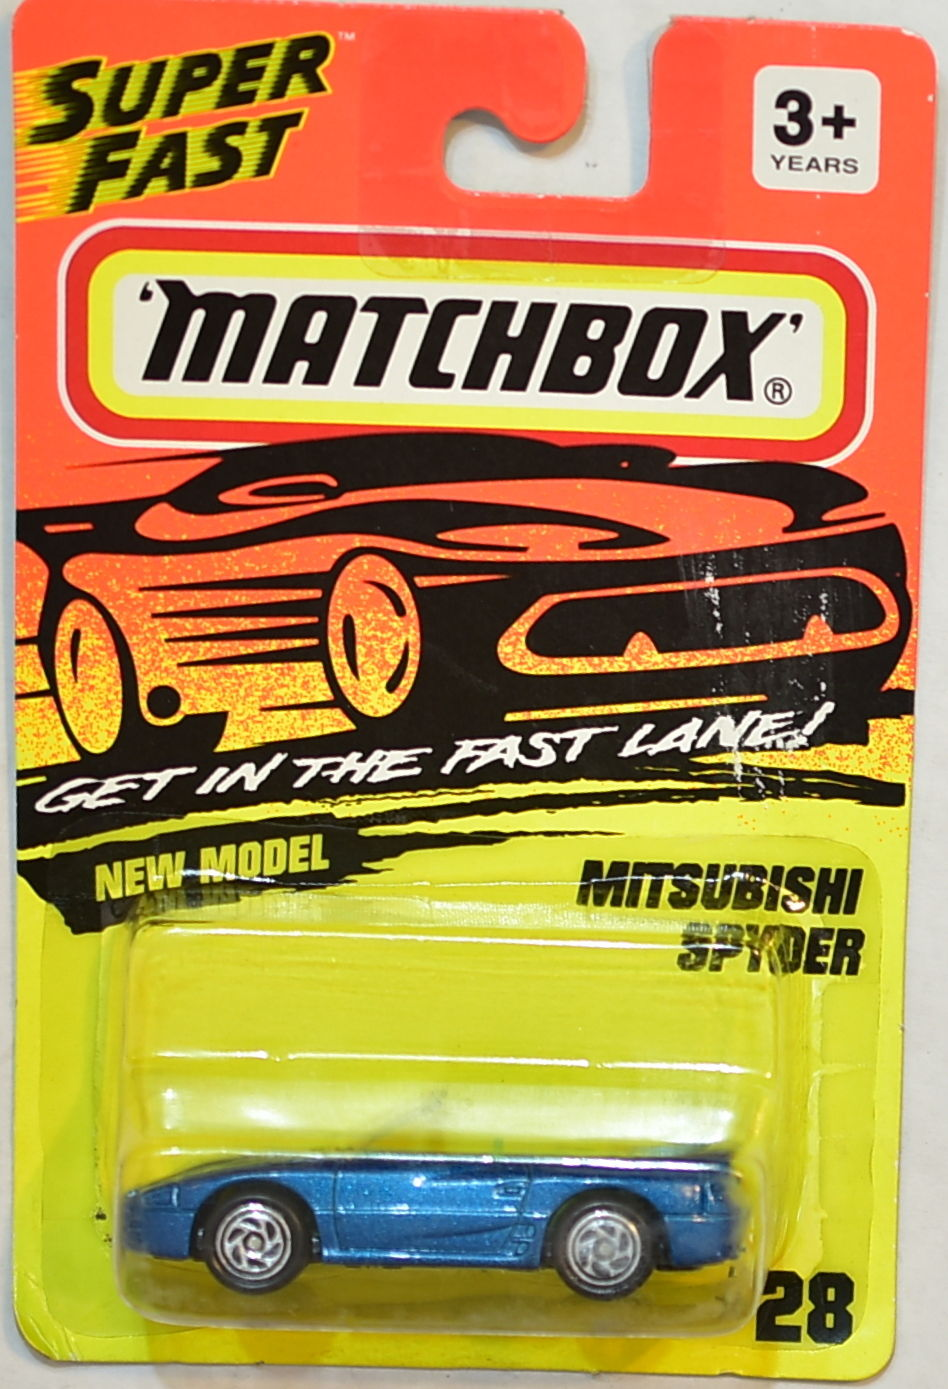 MATCHBOX 1994 NEW MODEL - MITSUBISHI SPYDER BLUE